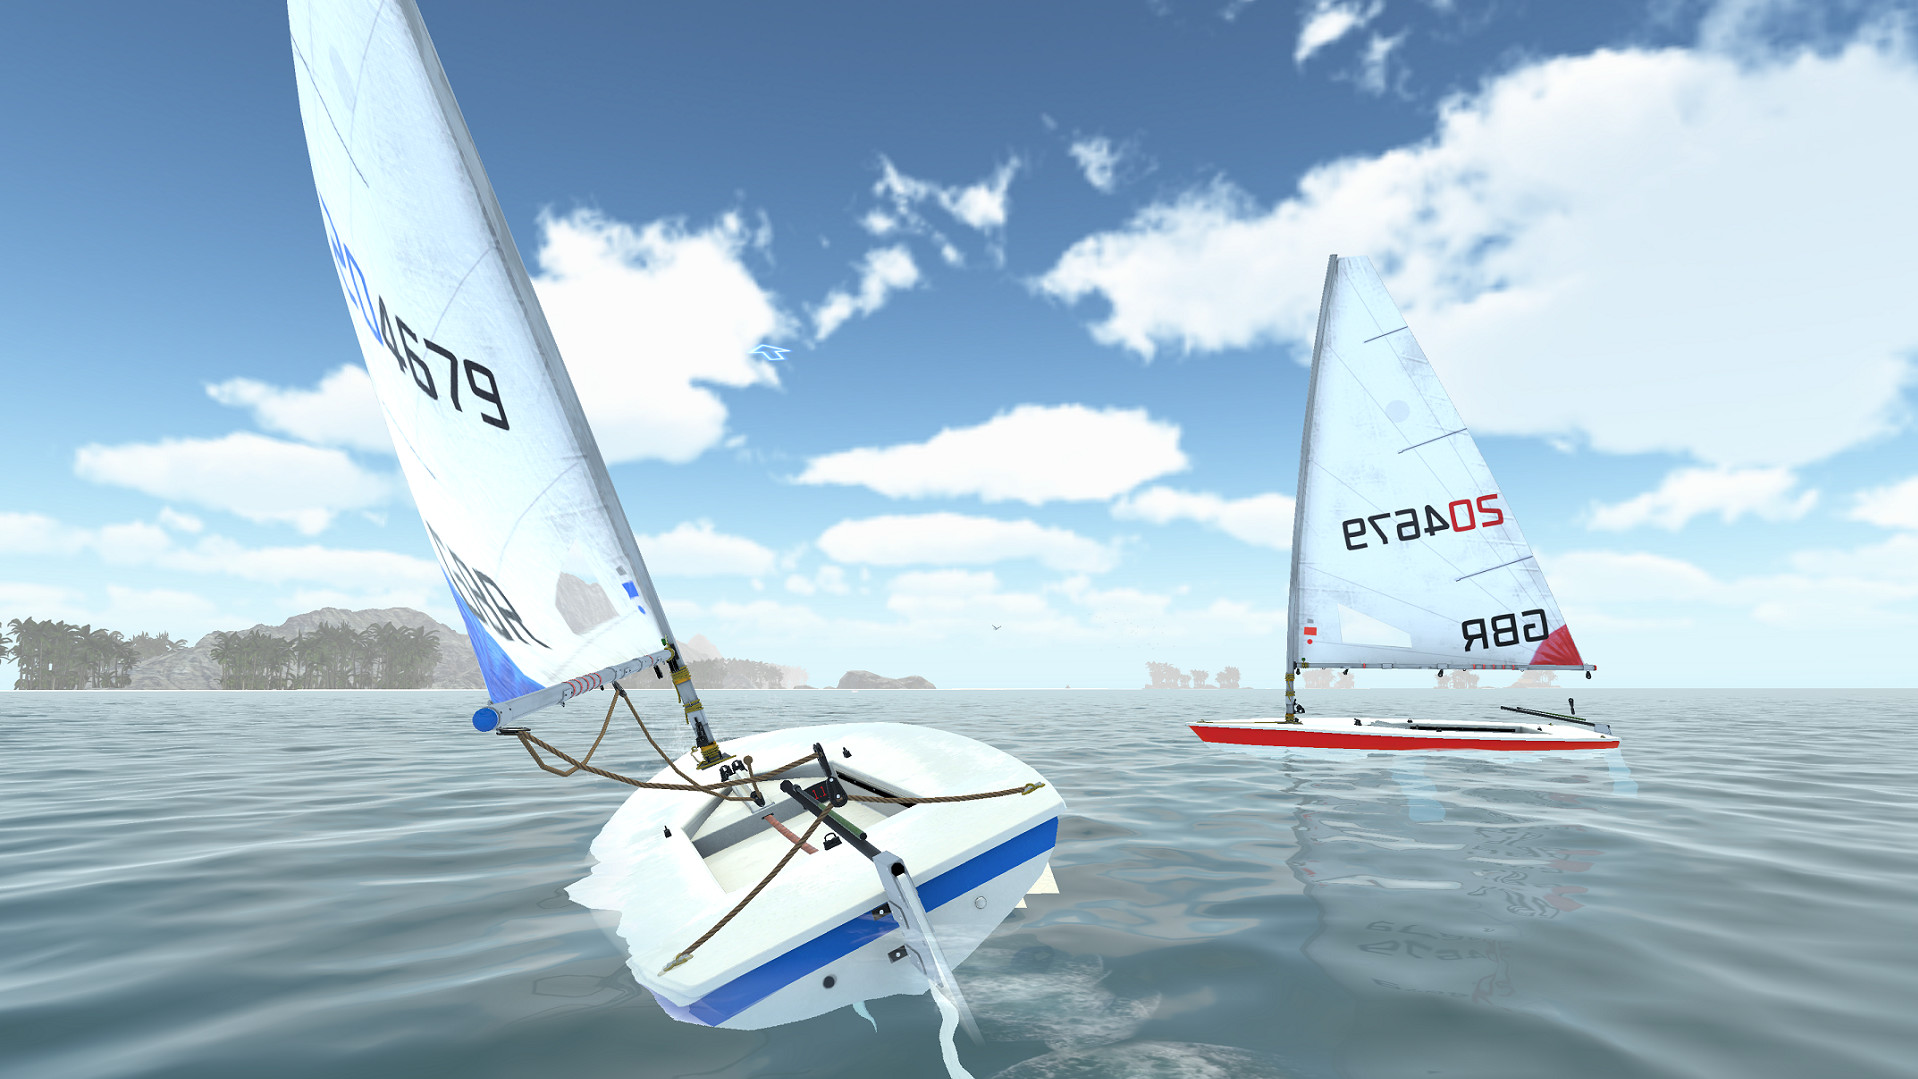 VR Regatta - The Sailing Game screenshot